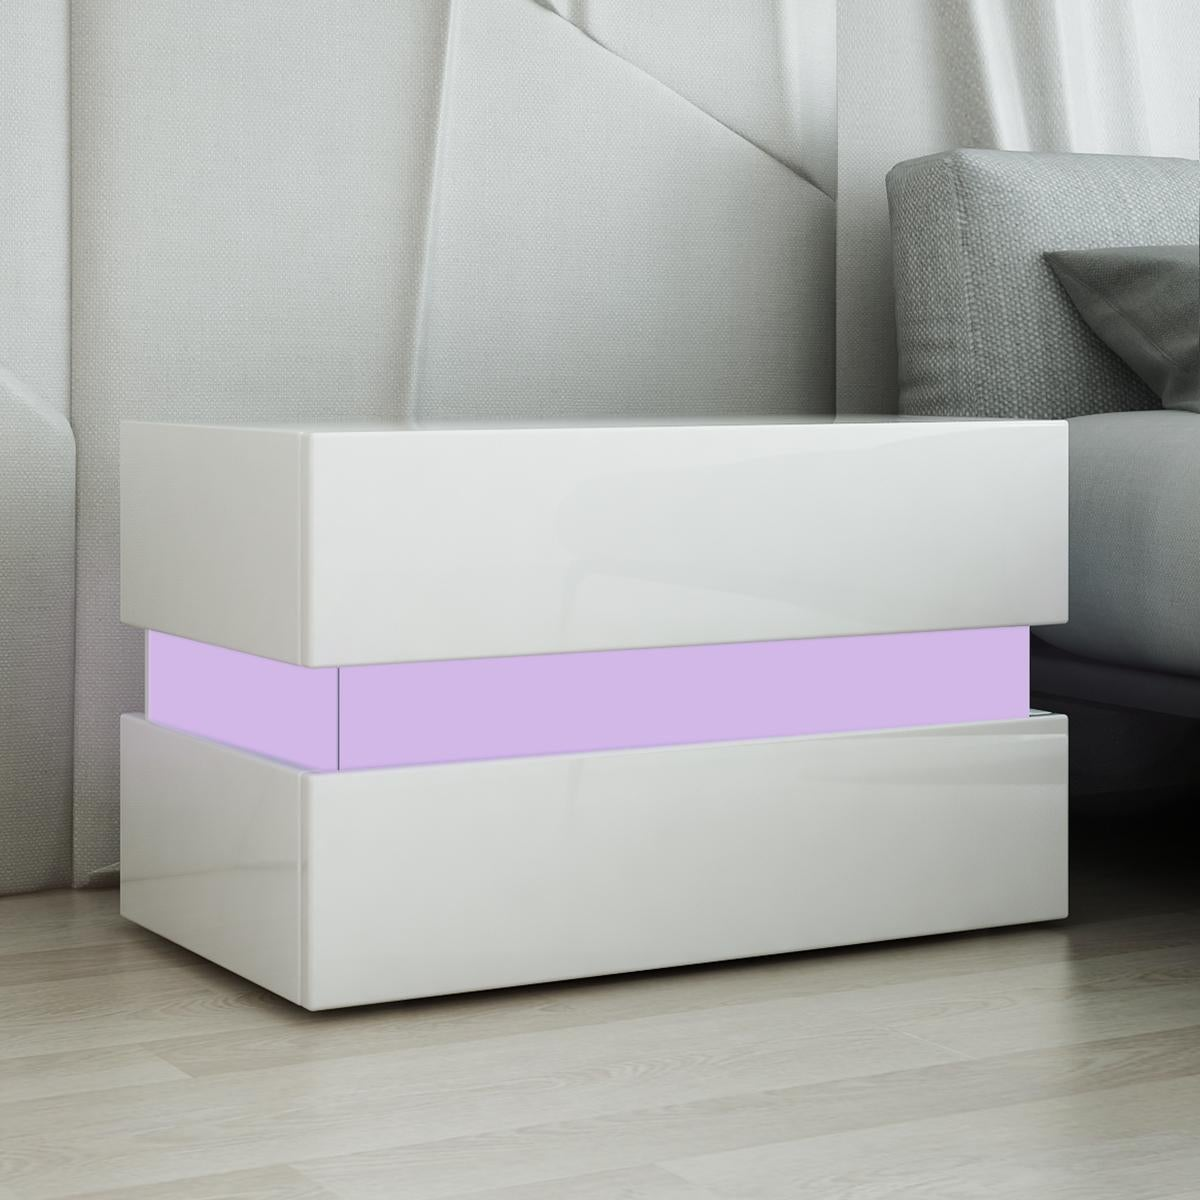 Dick Smith Bedside Table 2 Drawer Side Nightstand High Gloss Modern Bedroom Cabinet White Home Decor